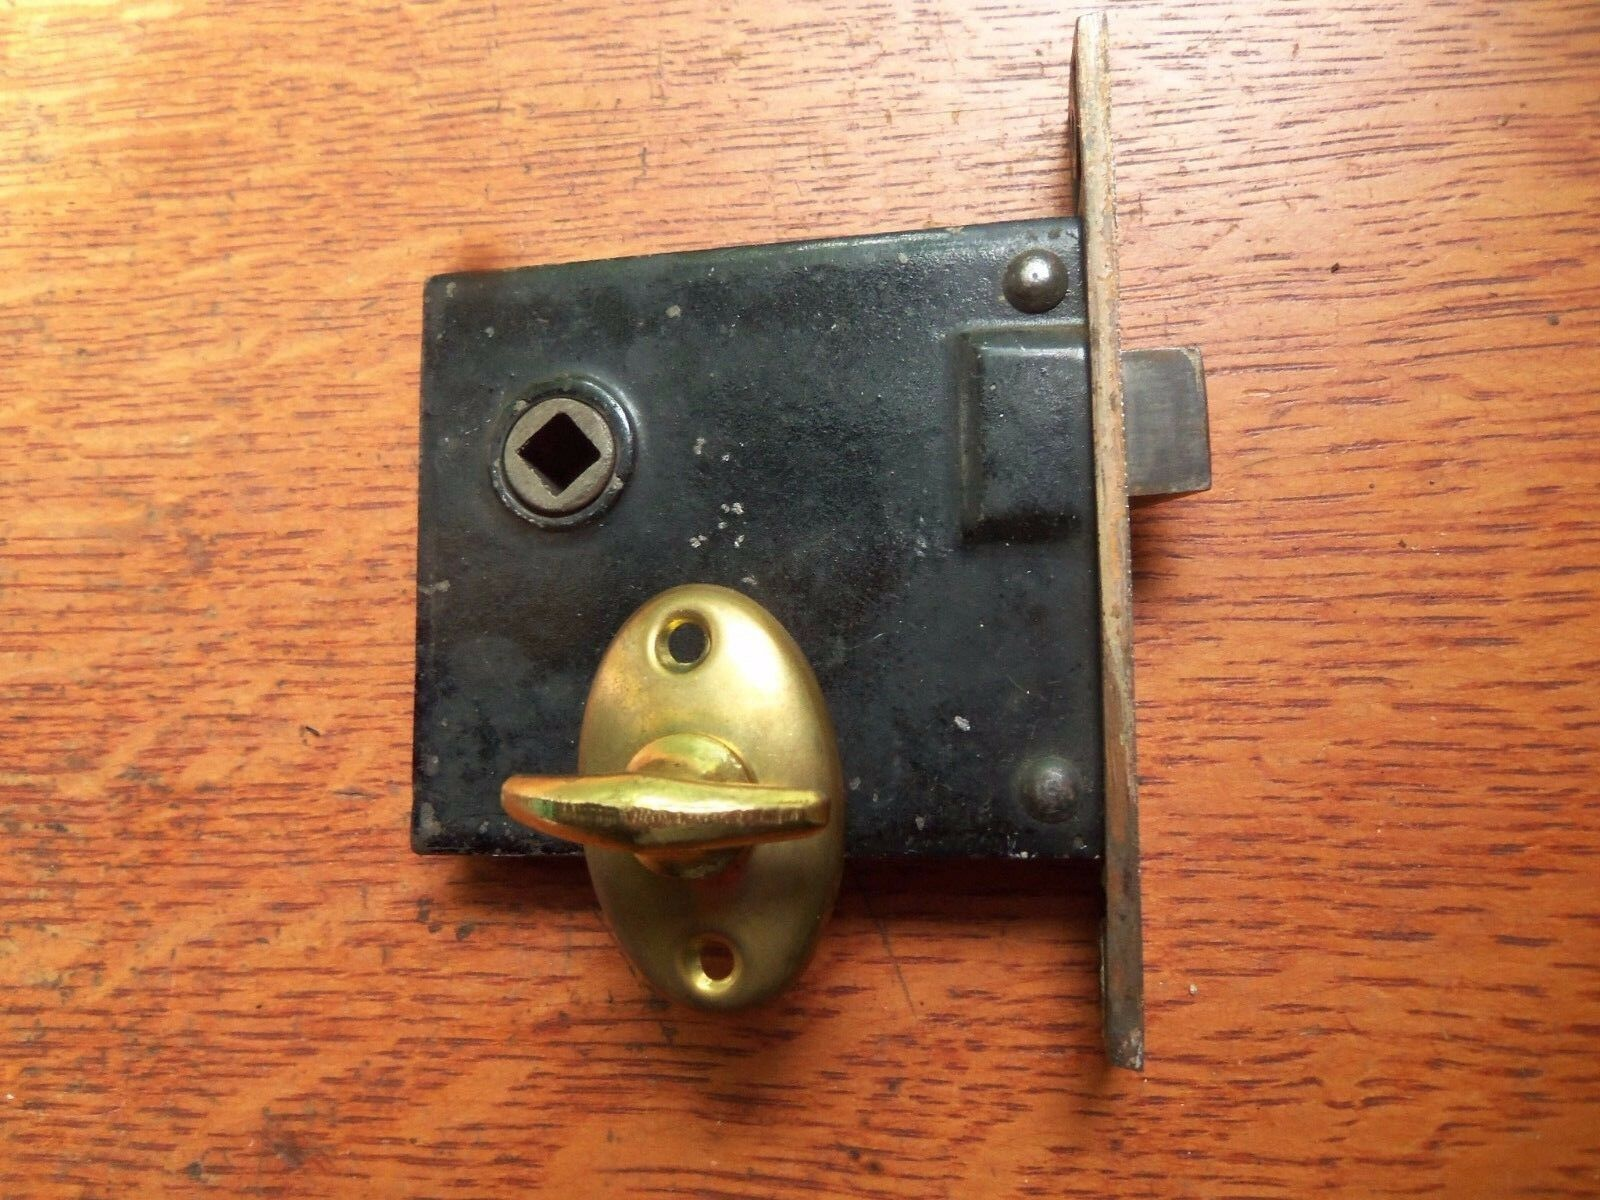 Antique Brass-Plated Mortise Lock with Privacy Key c1900 for Bathroom, Pantry